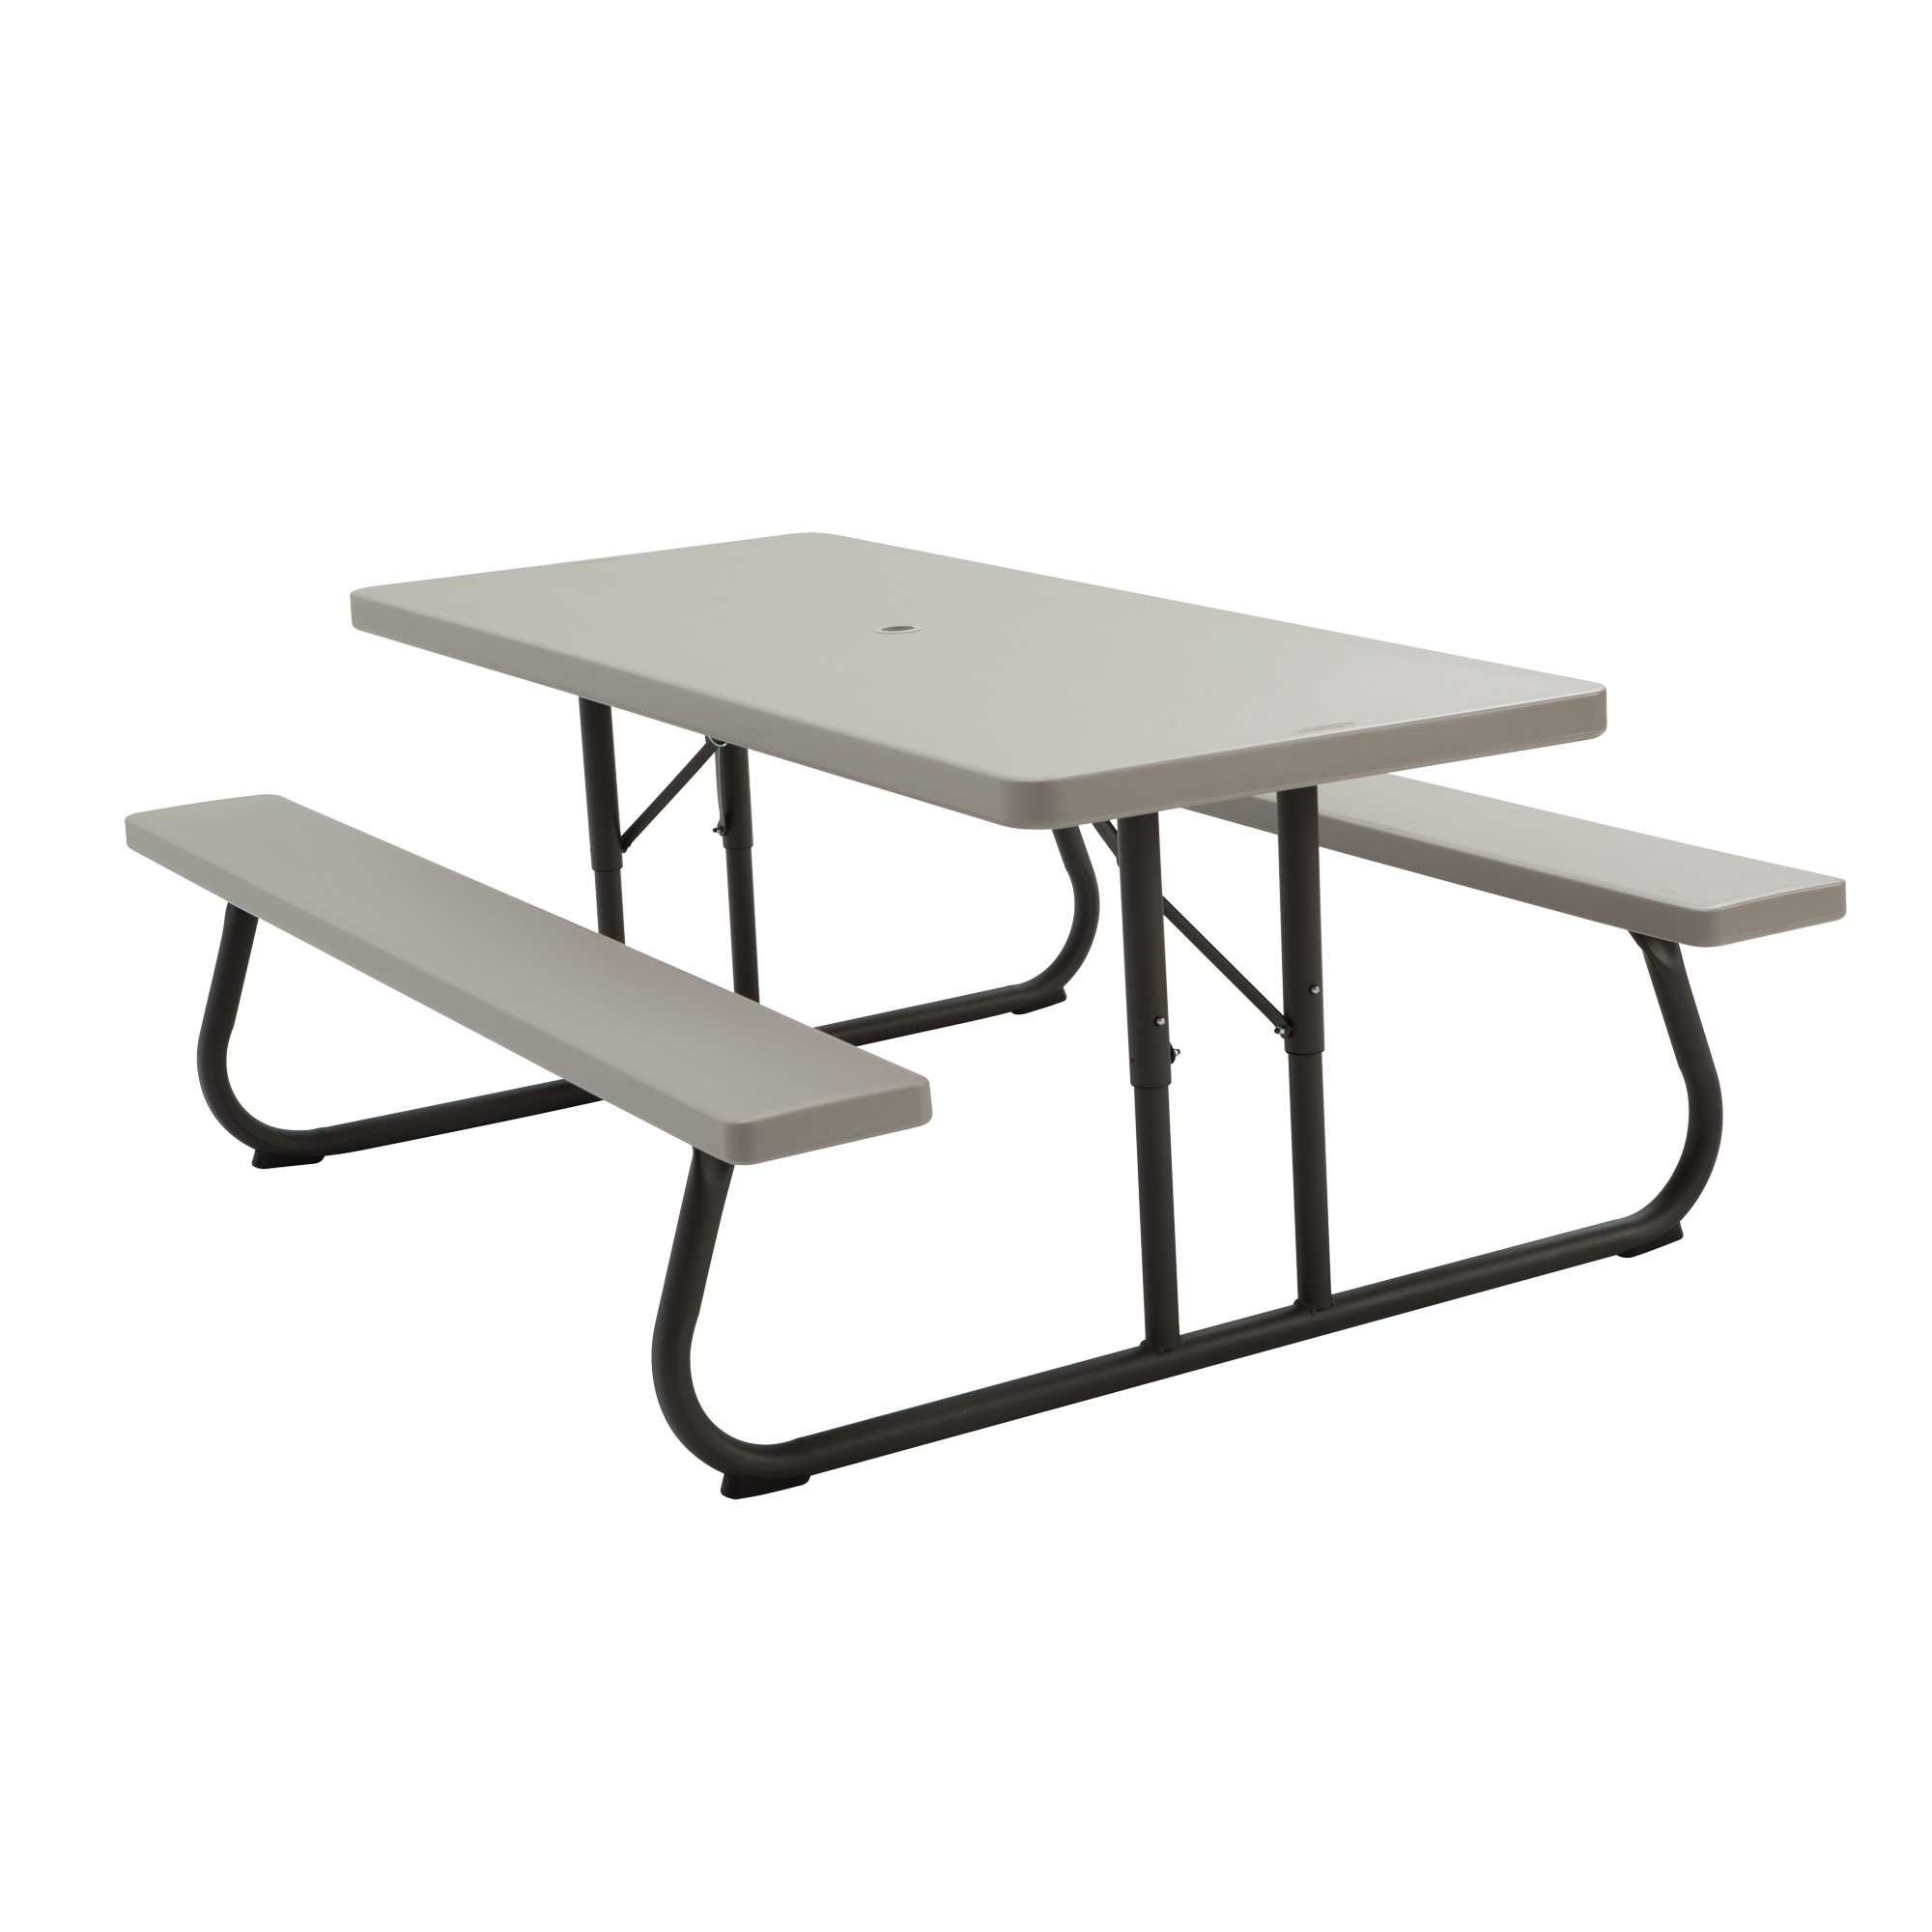 Lifetime 22119 Picnic Table And Benches 6 Foot Putty Putty 6 Ft